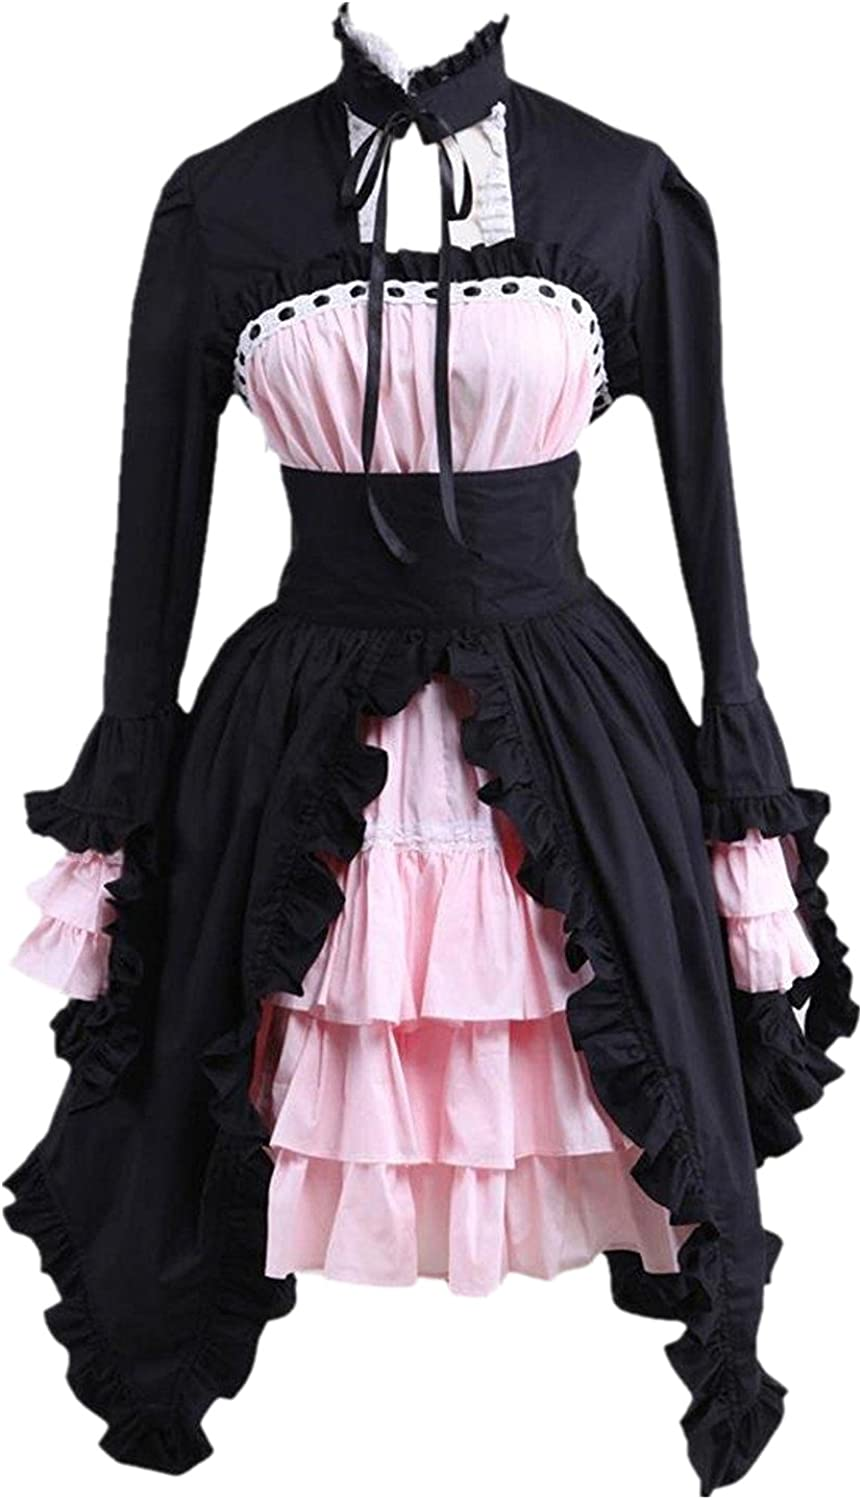 Ainclu Womens Black and Pink Cotton Gothic Lolita Dress